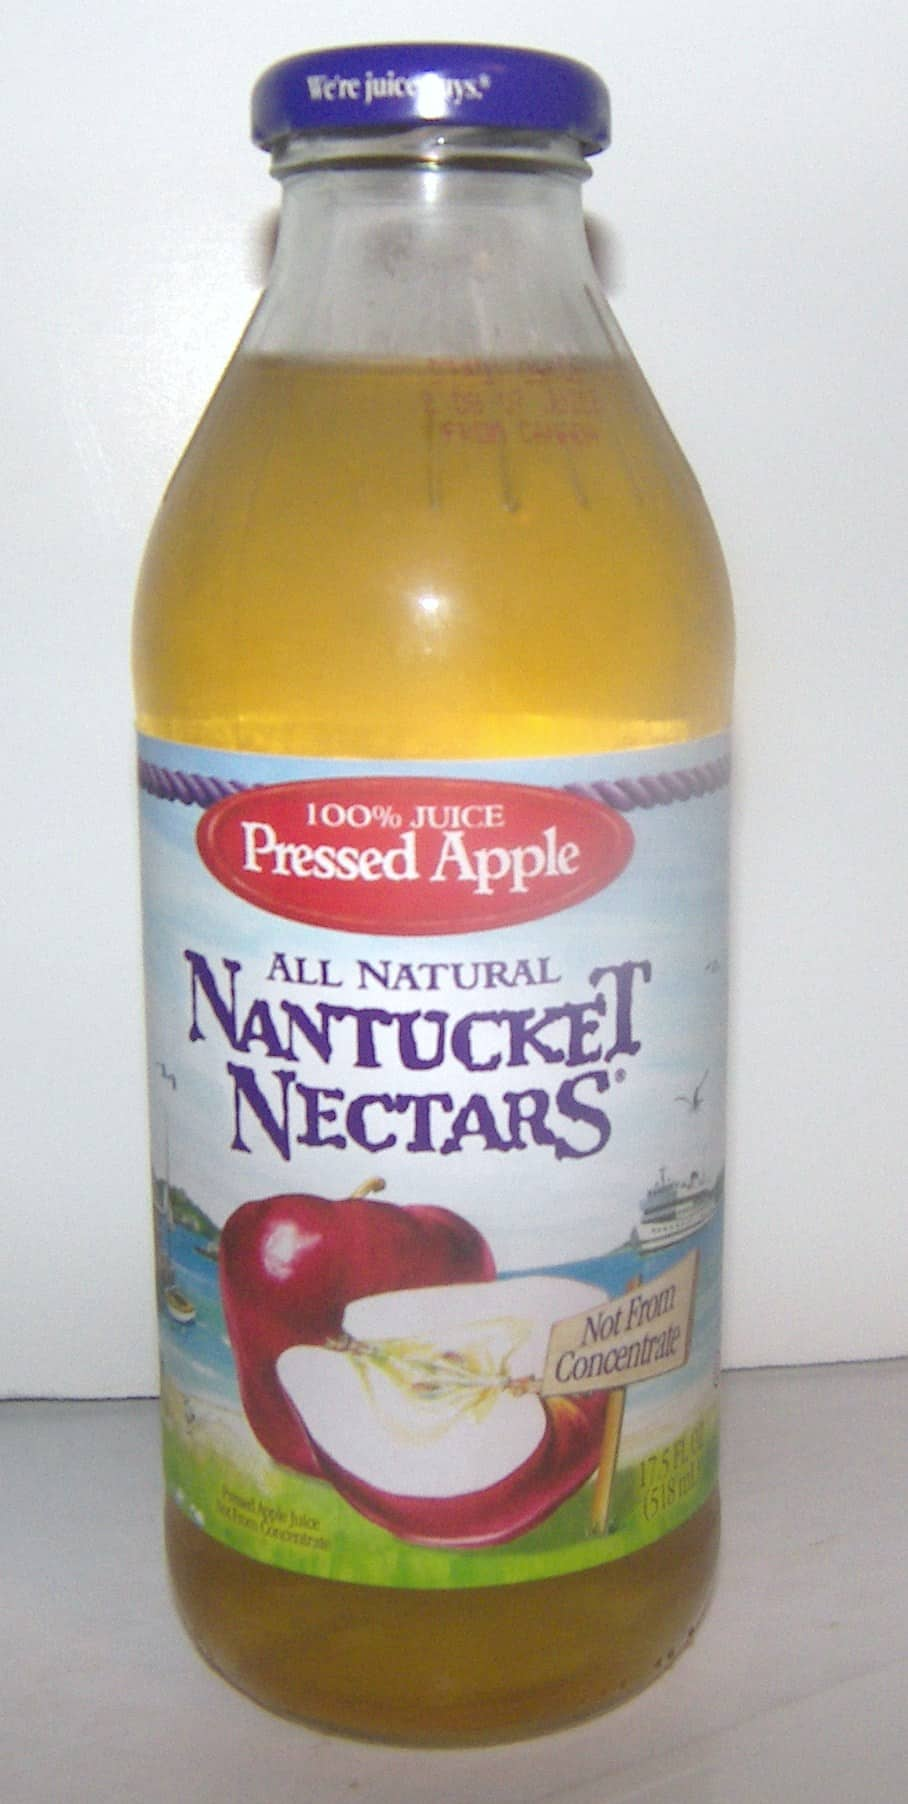 nantucket nectar s case solution Unformatted text preview: market the most compatible company to purchase nantucket nectars would be tropicana they have a strong hold on the northeast us with a 70% market share they are set up in grocery stores so that would be the gateway for nantucket nectar's juices to expand in the long.